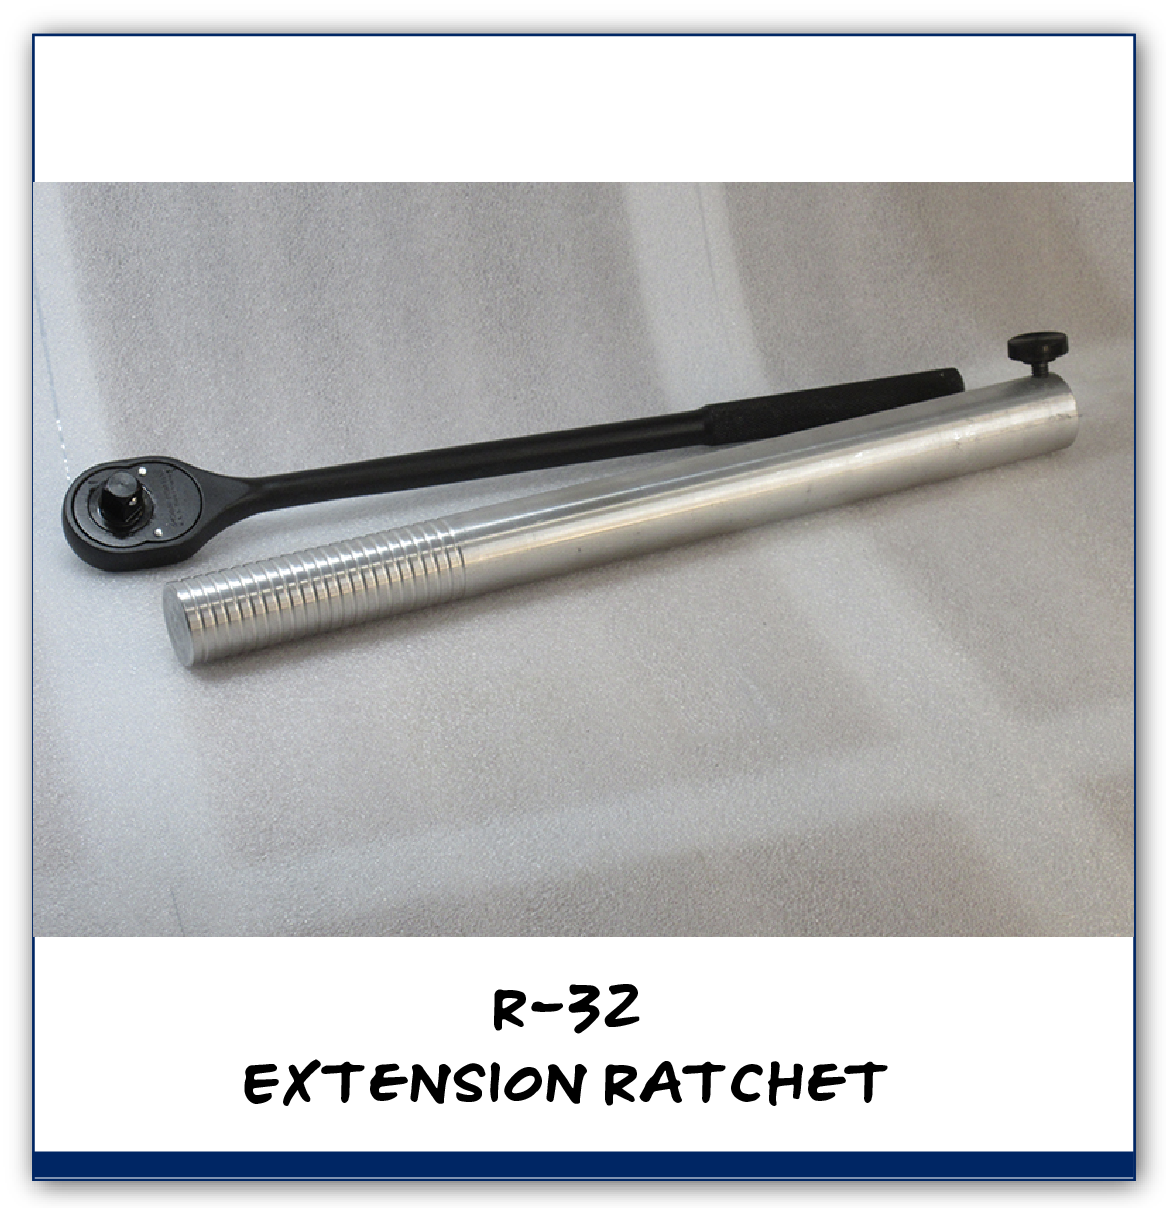 C-Sert MAG DRILL SYSTEM COMPONENTS R-32 Extension Ratchet